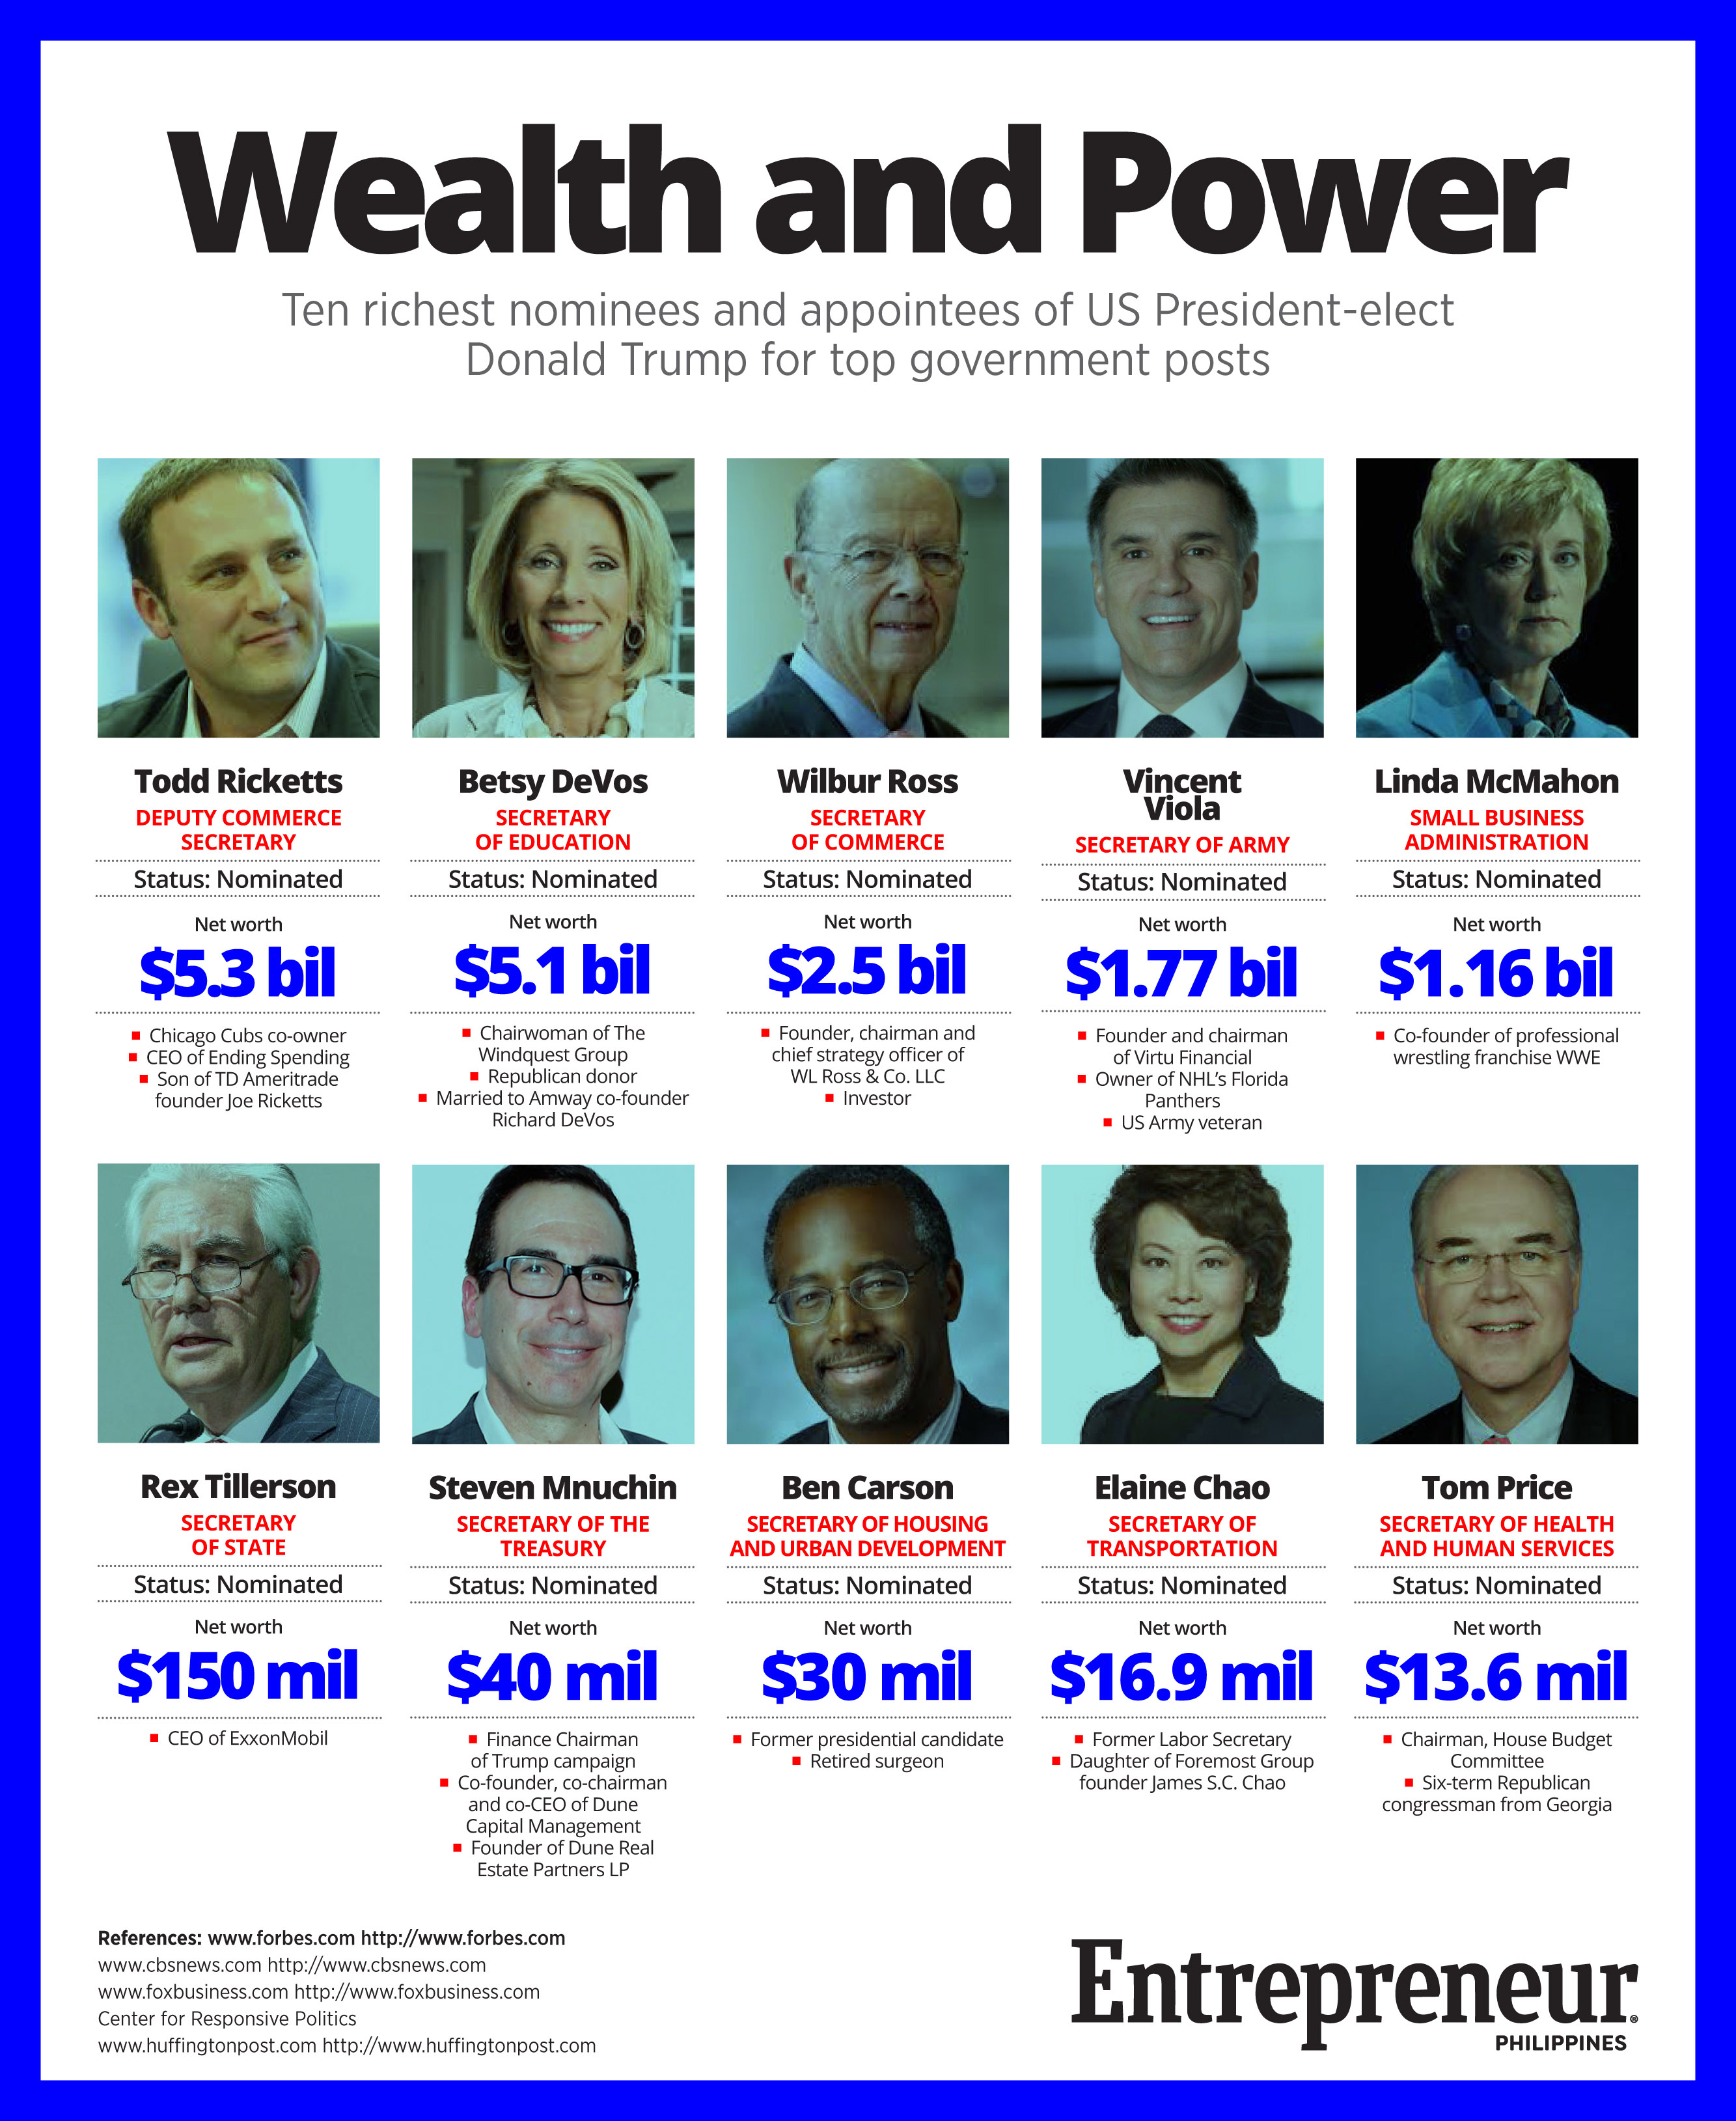 Infographic) The 10 Richest Names in Donald Trump's Gov't Team ...